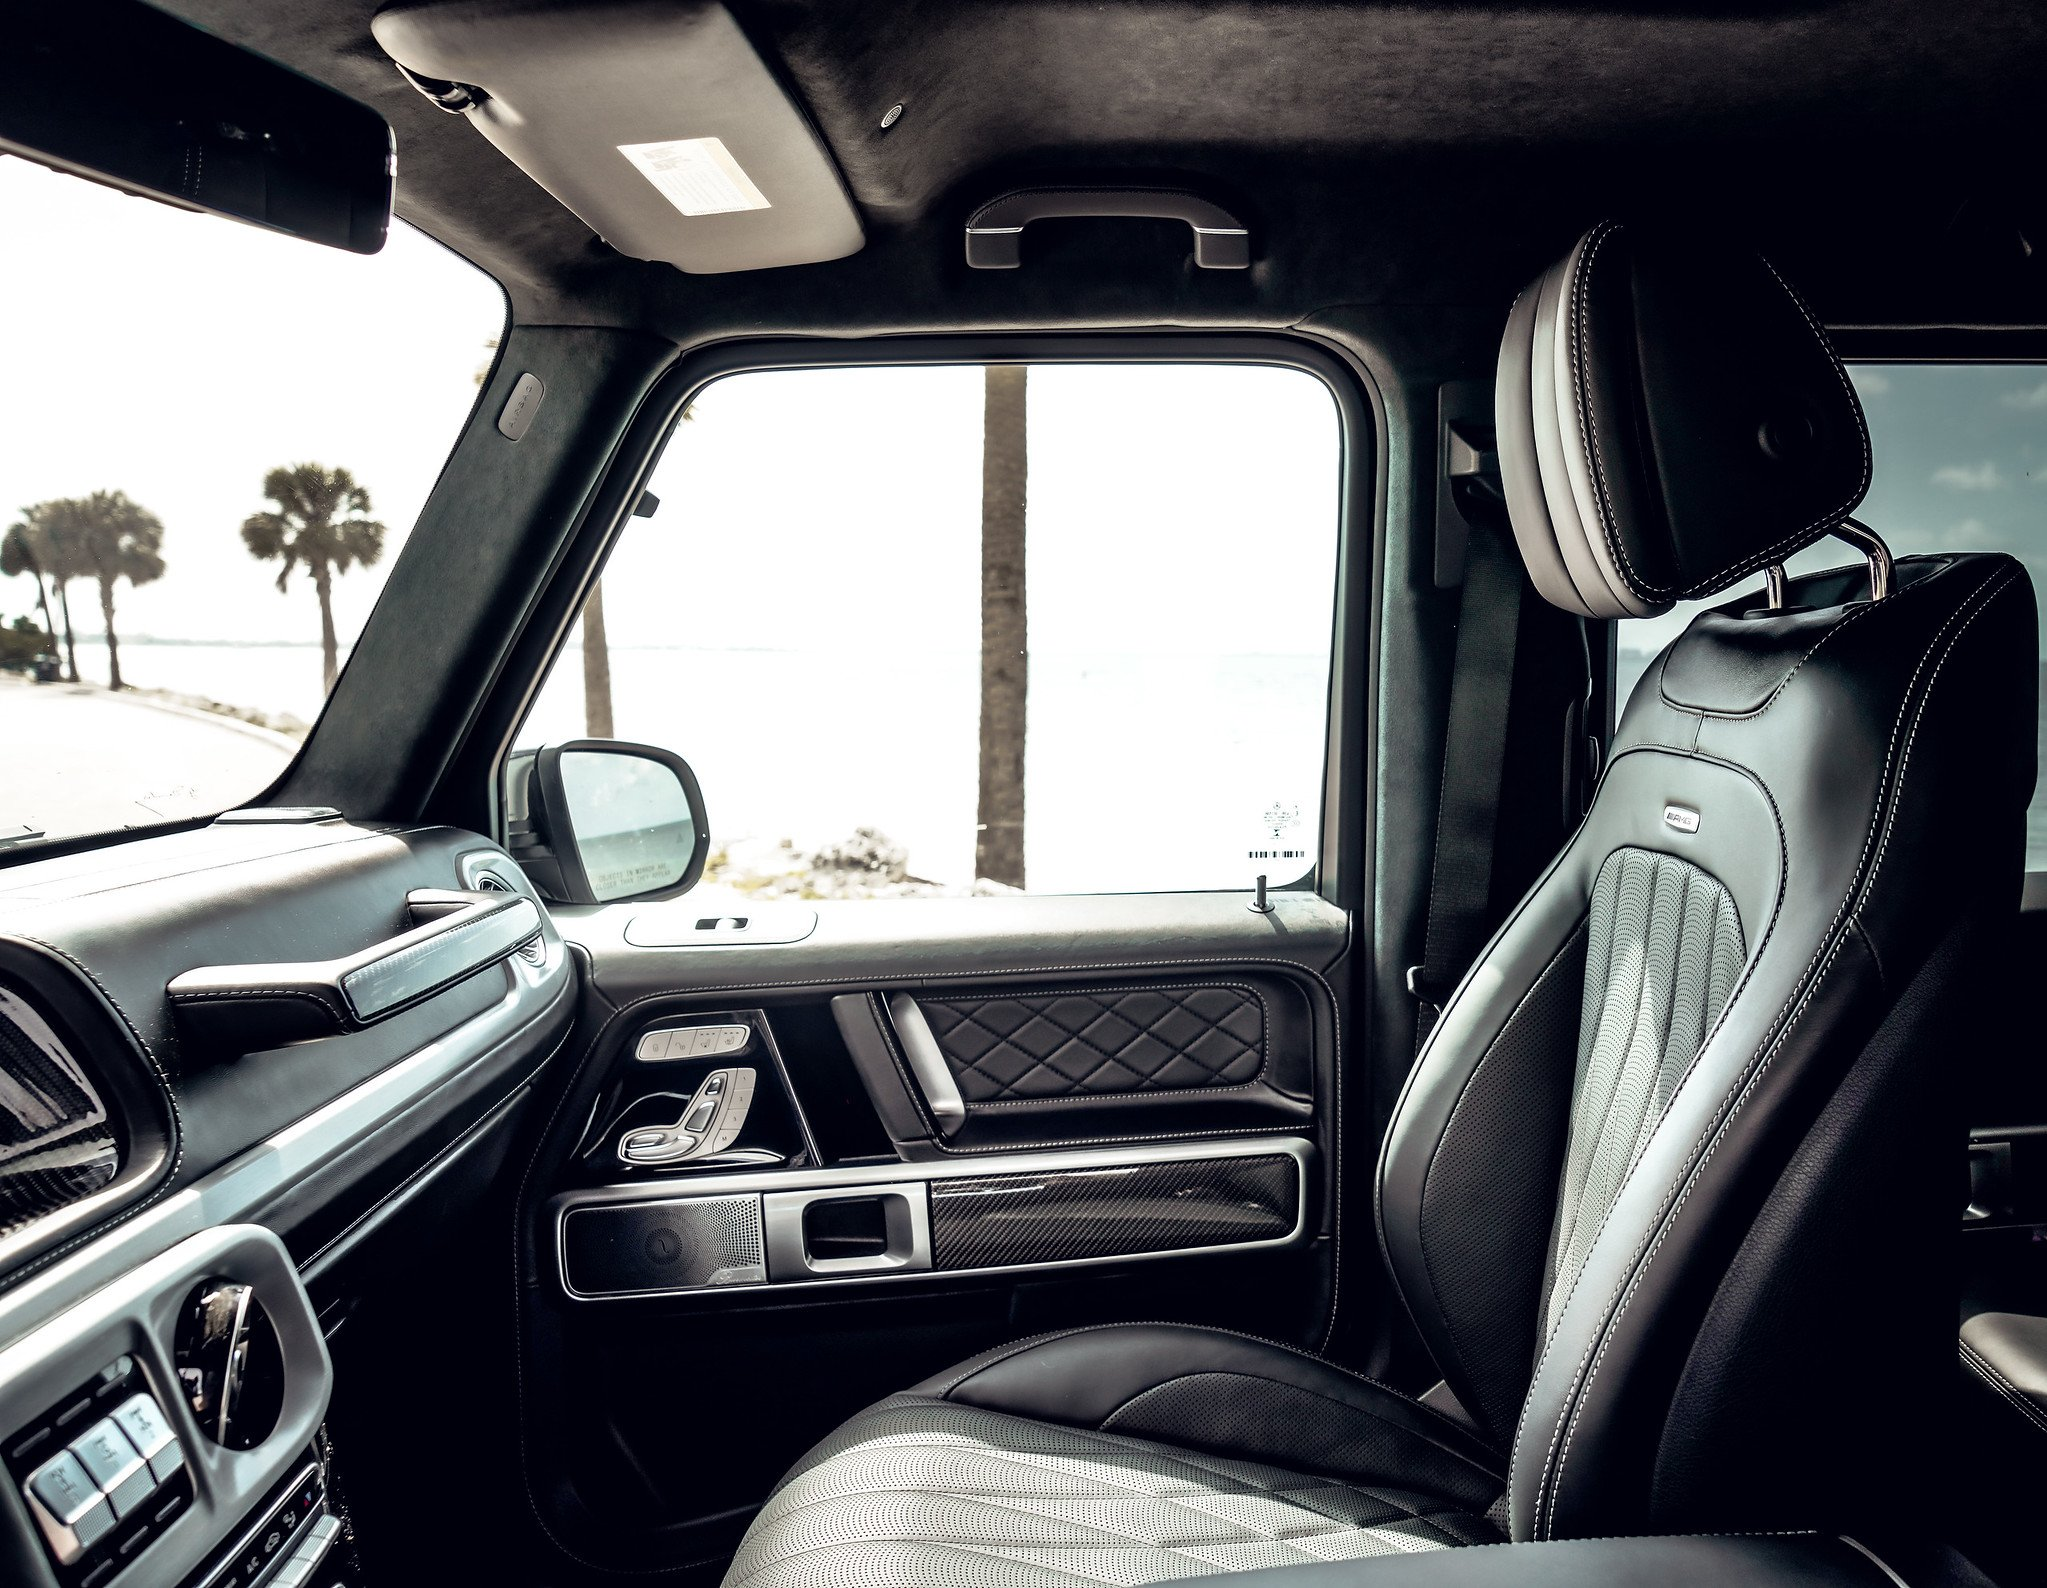 Image #6 of our  Mercedes AMG G63    In Miami Fort Lauderdale Palm Beach South Florida